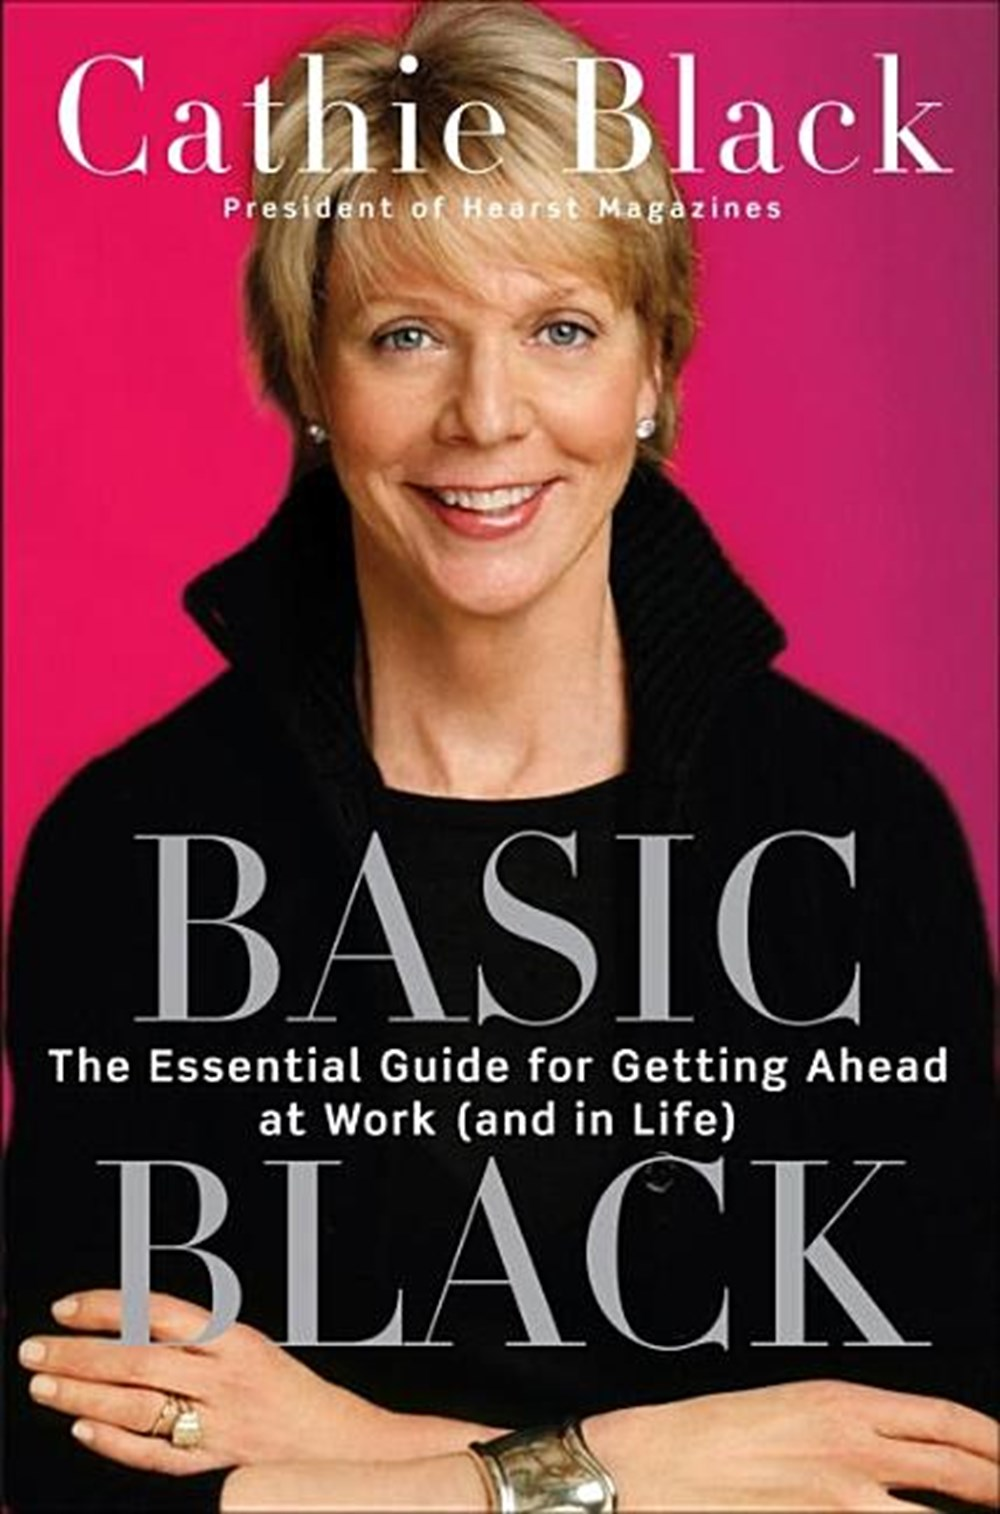 Basic Black The Essential Guide for Getting Ahead at Work (and in Life)